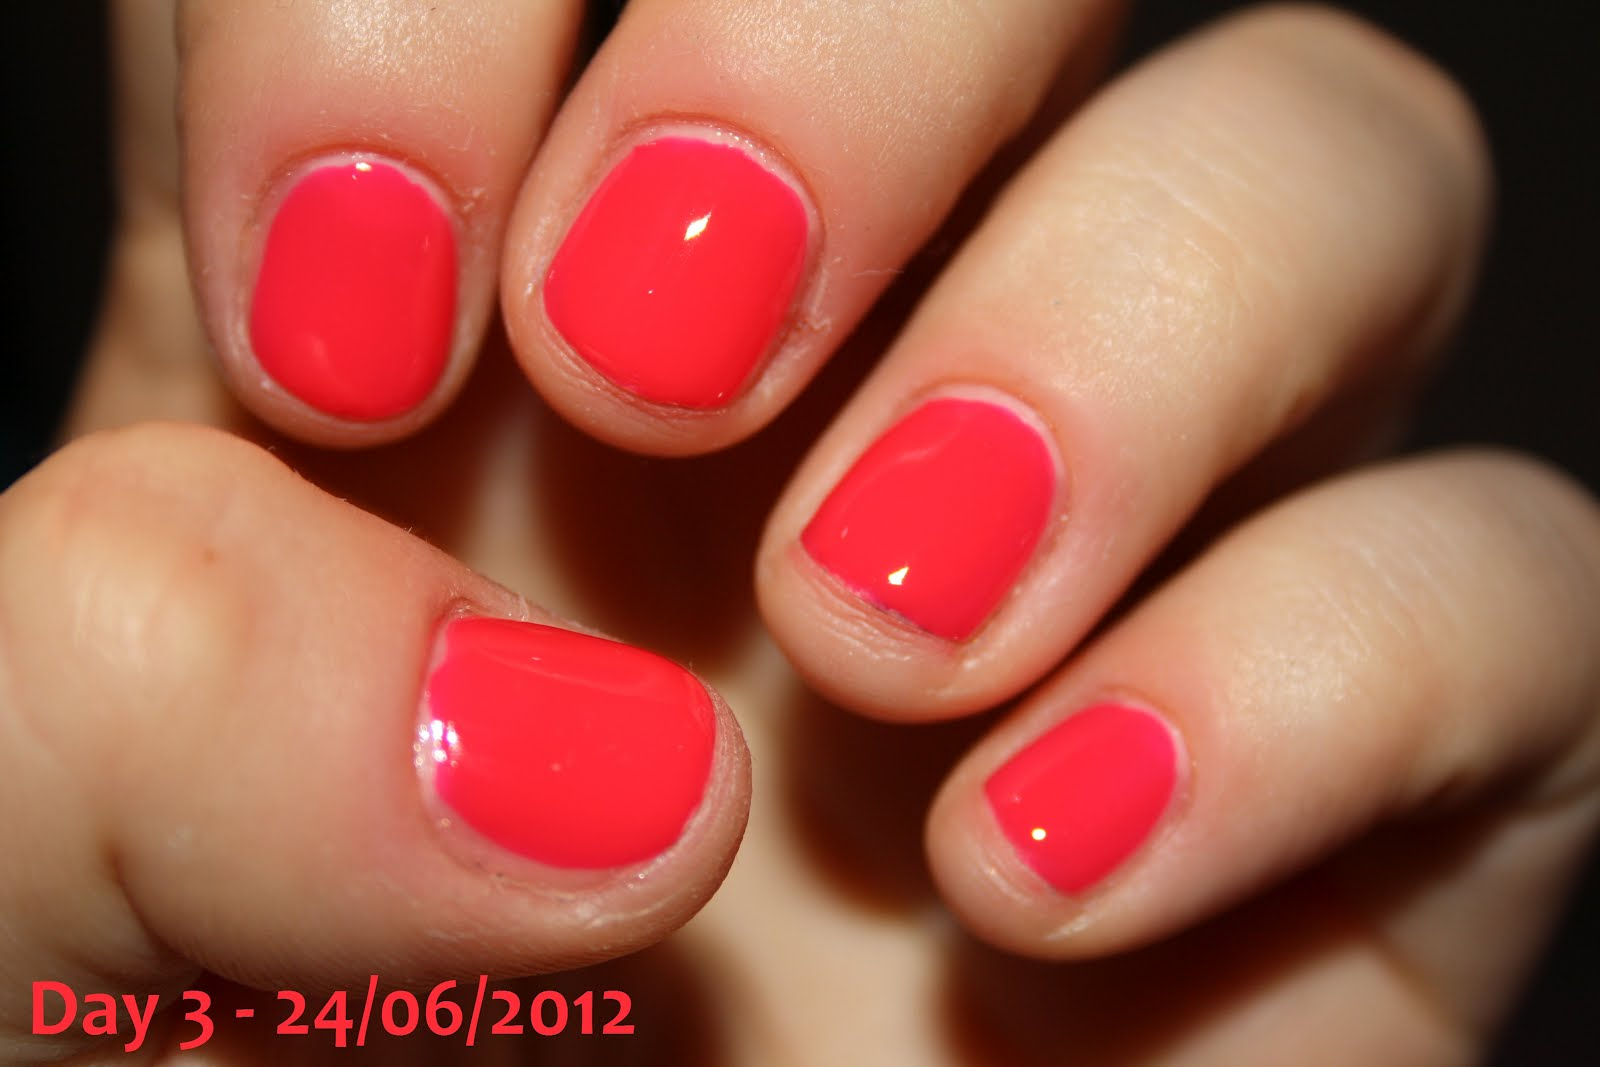 OMFGyournails: Nail growth \